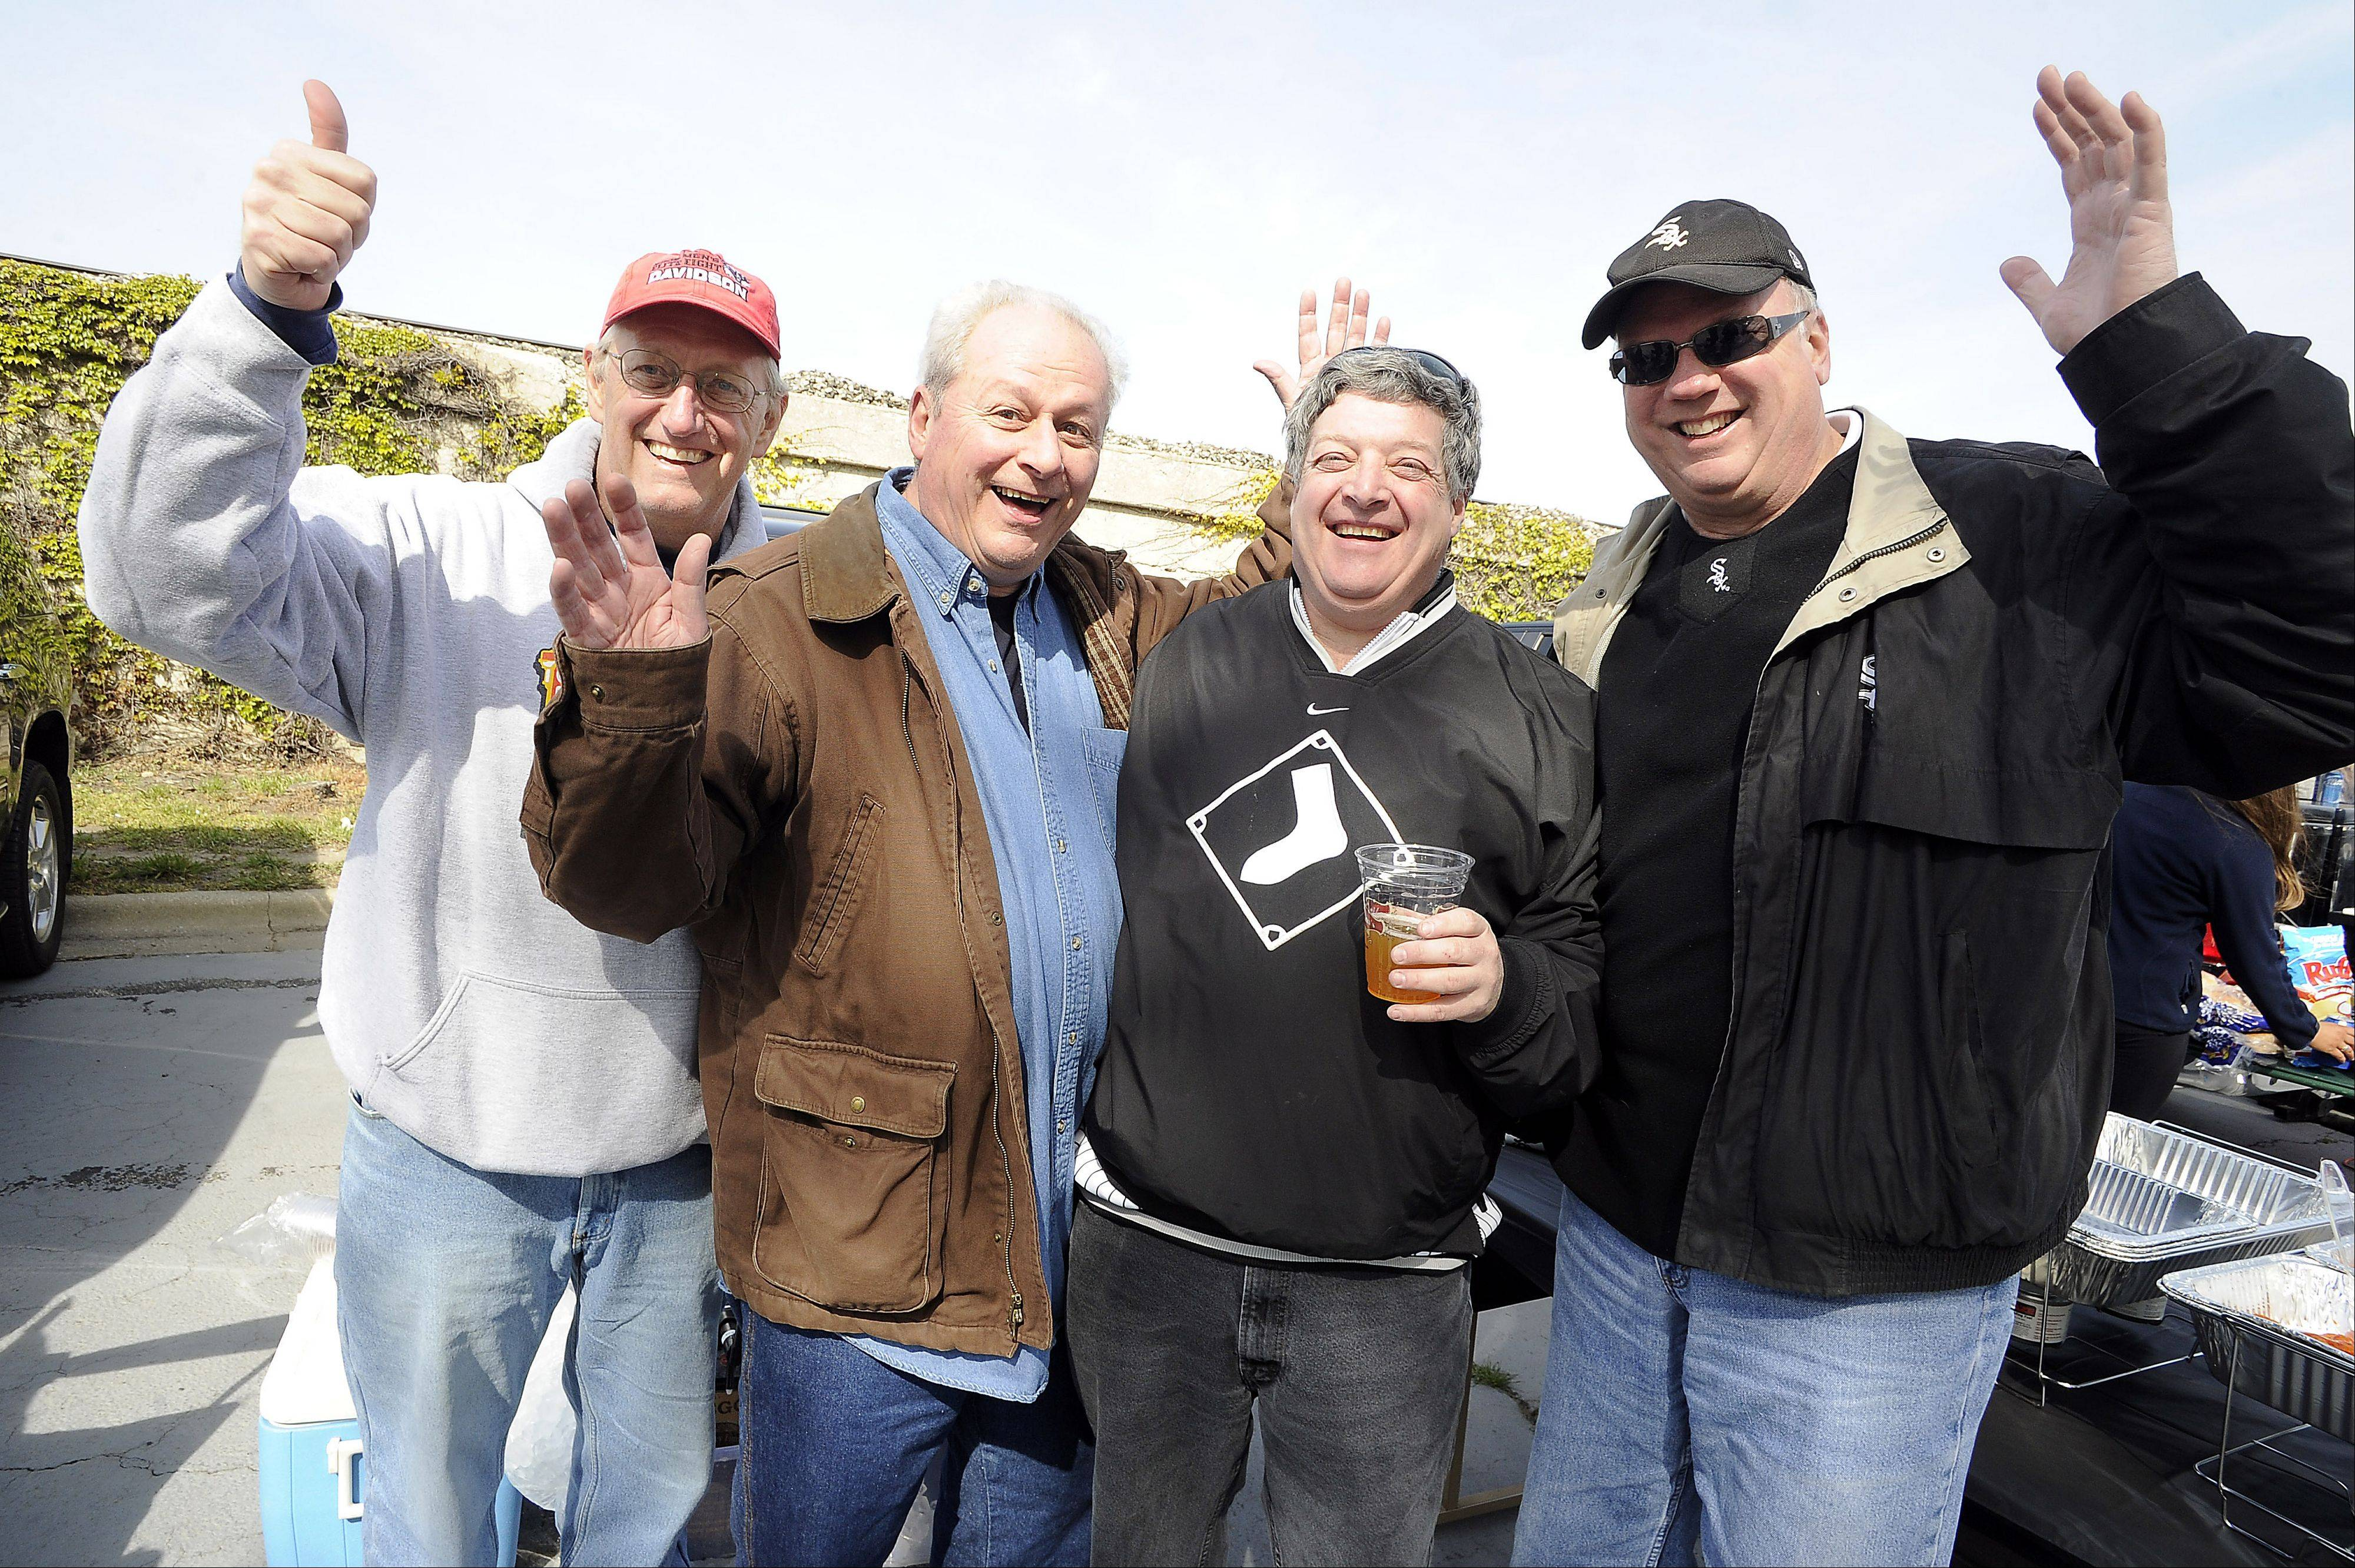 Wearing his black Sox shirt, Libertyville's Howard Jaffe, 58, second from right, attends his 50th consecutive White Sox Opening Day. Buddies, from left, Steve Risley of Libertyville, Mike Cuccinelli of Roscoe and Tom Miller of Libertyville enjoy tailgating before the game.